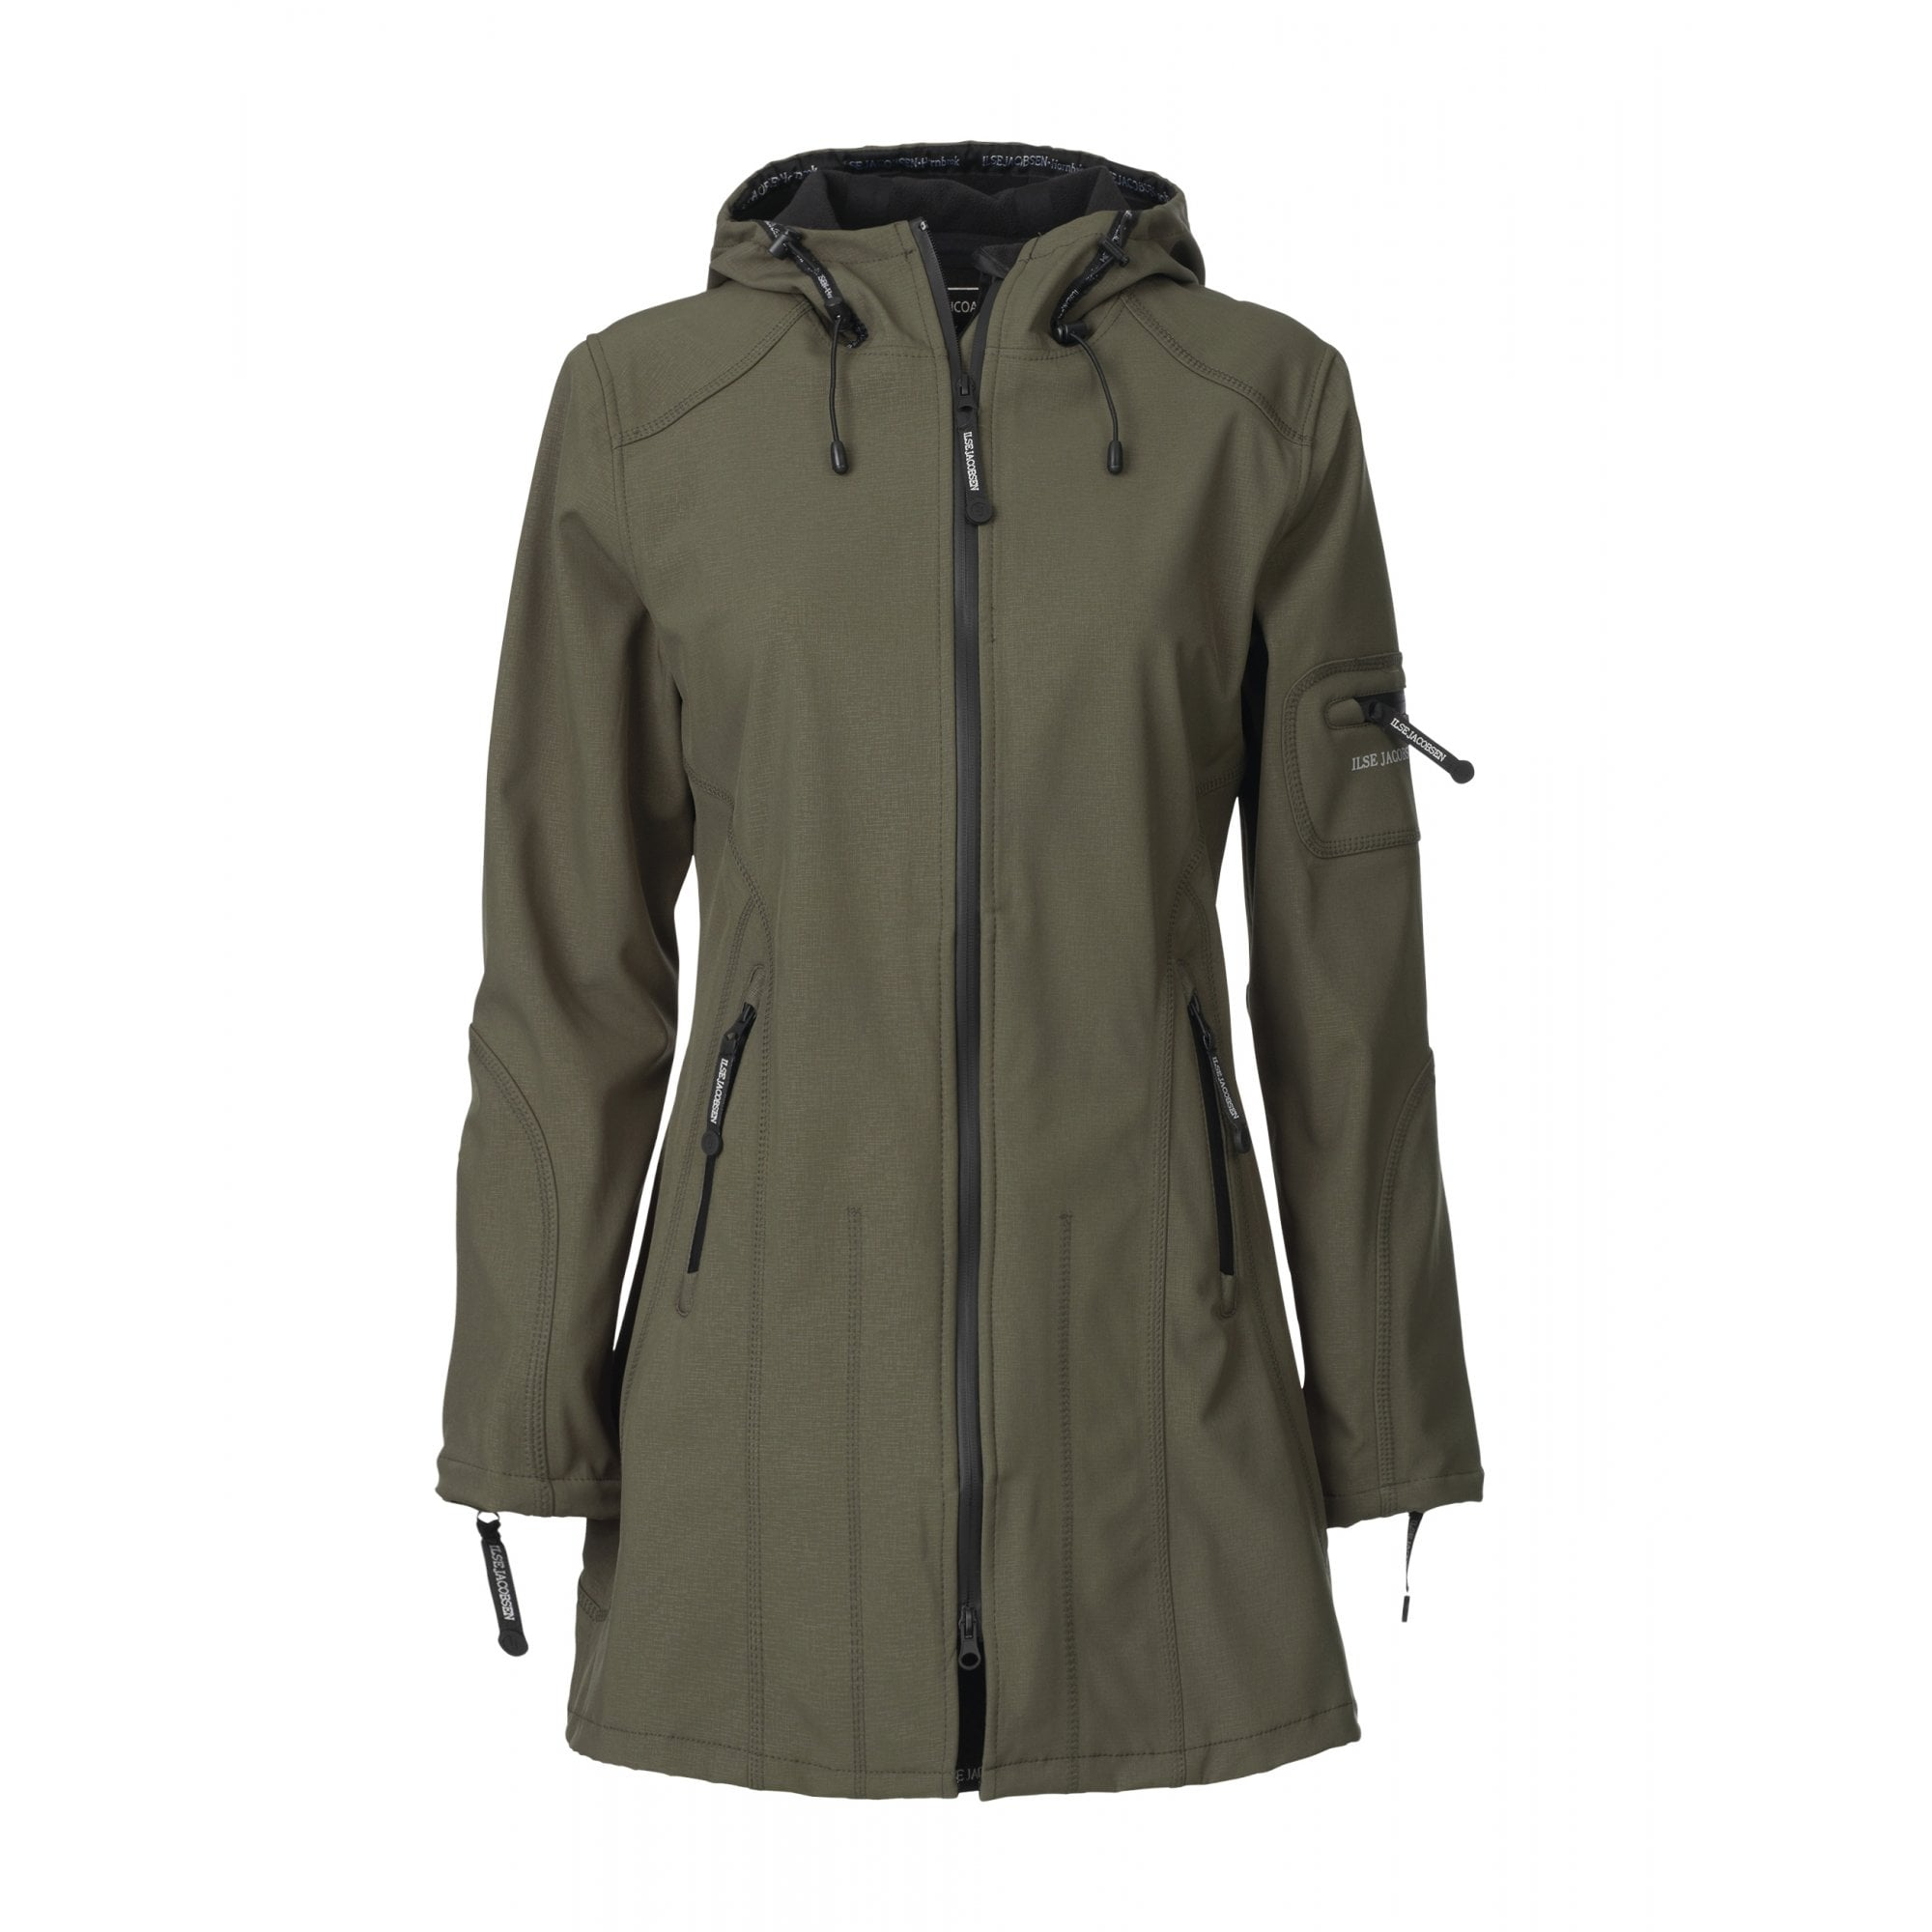 255f98435b41 ILSE JACOBSEN Rain 07 Waterproof Coat in Army